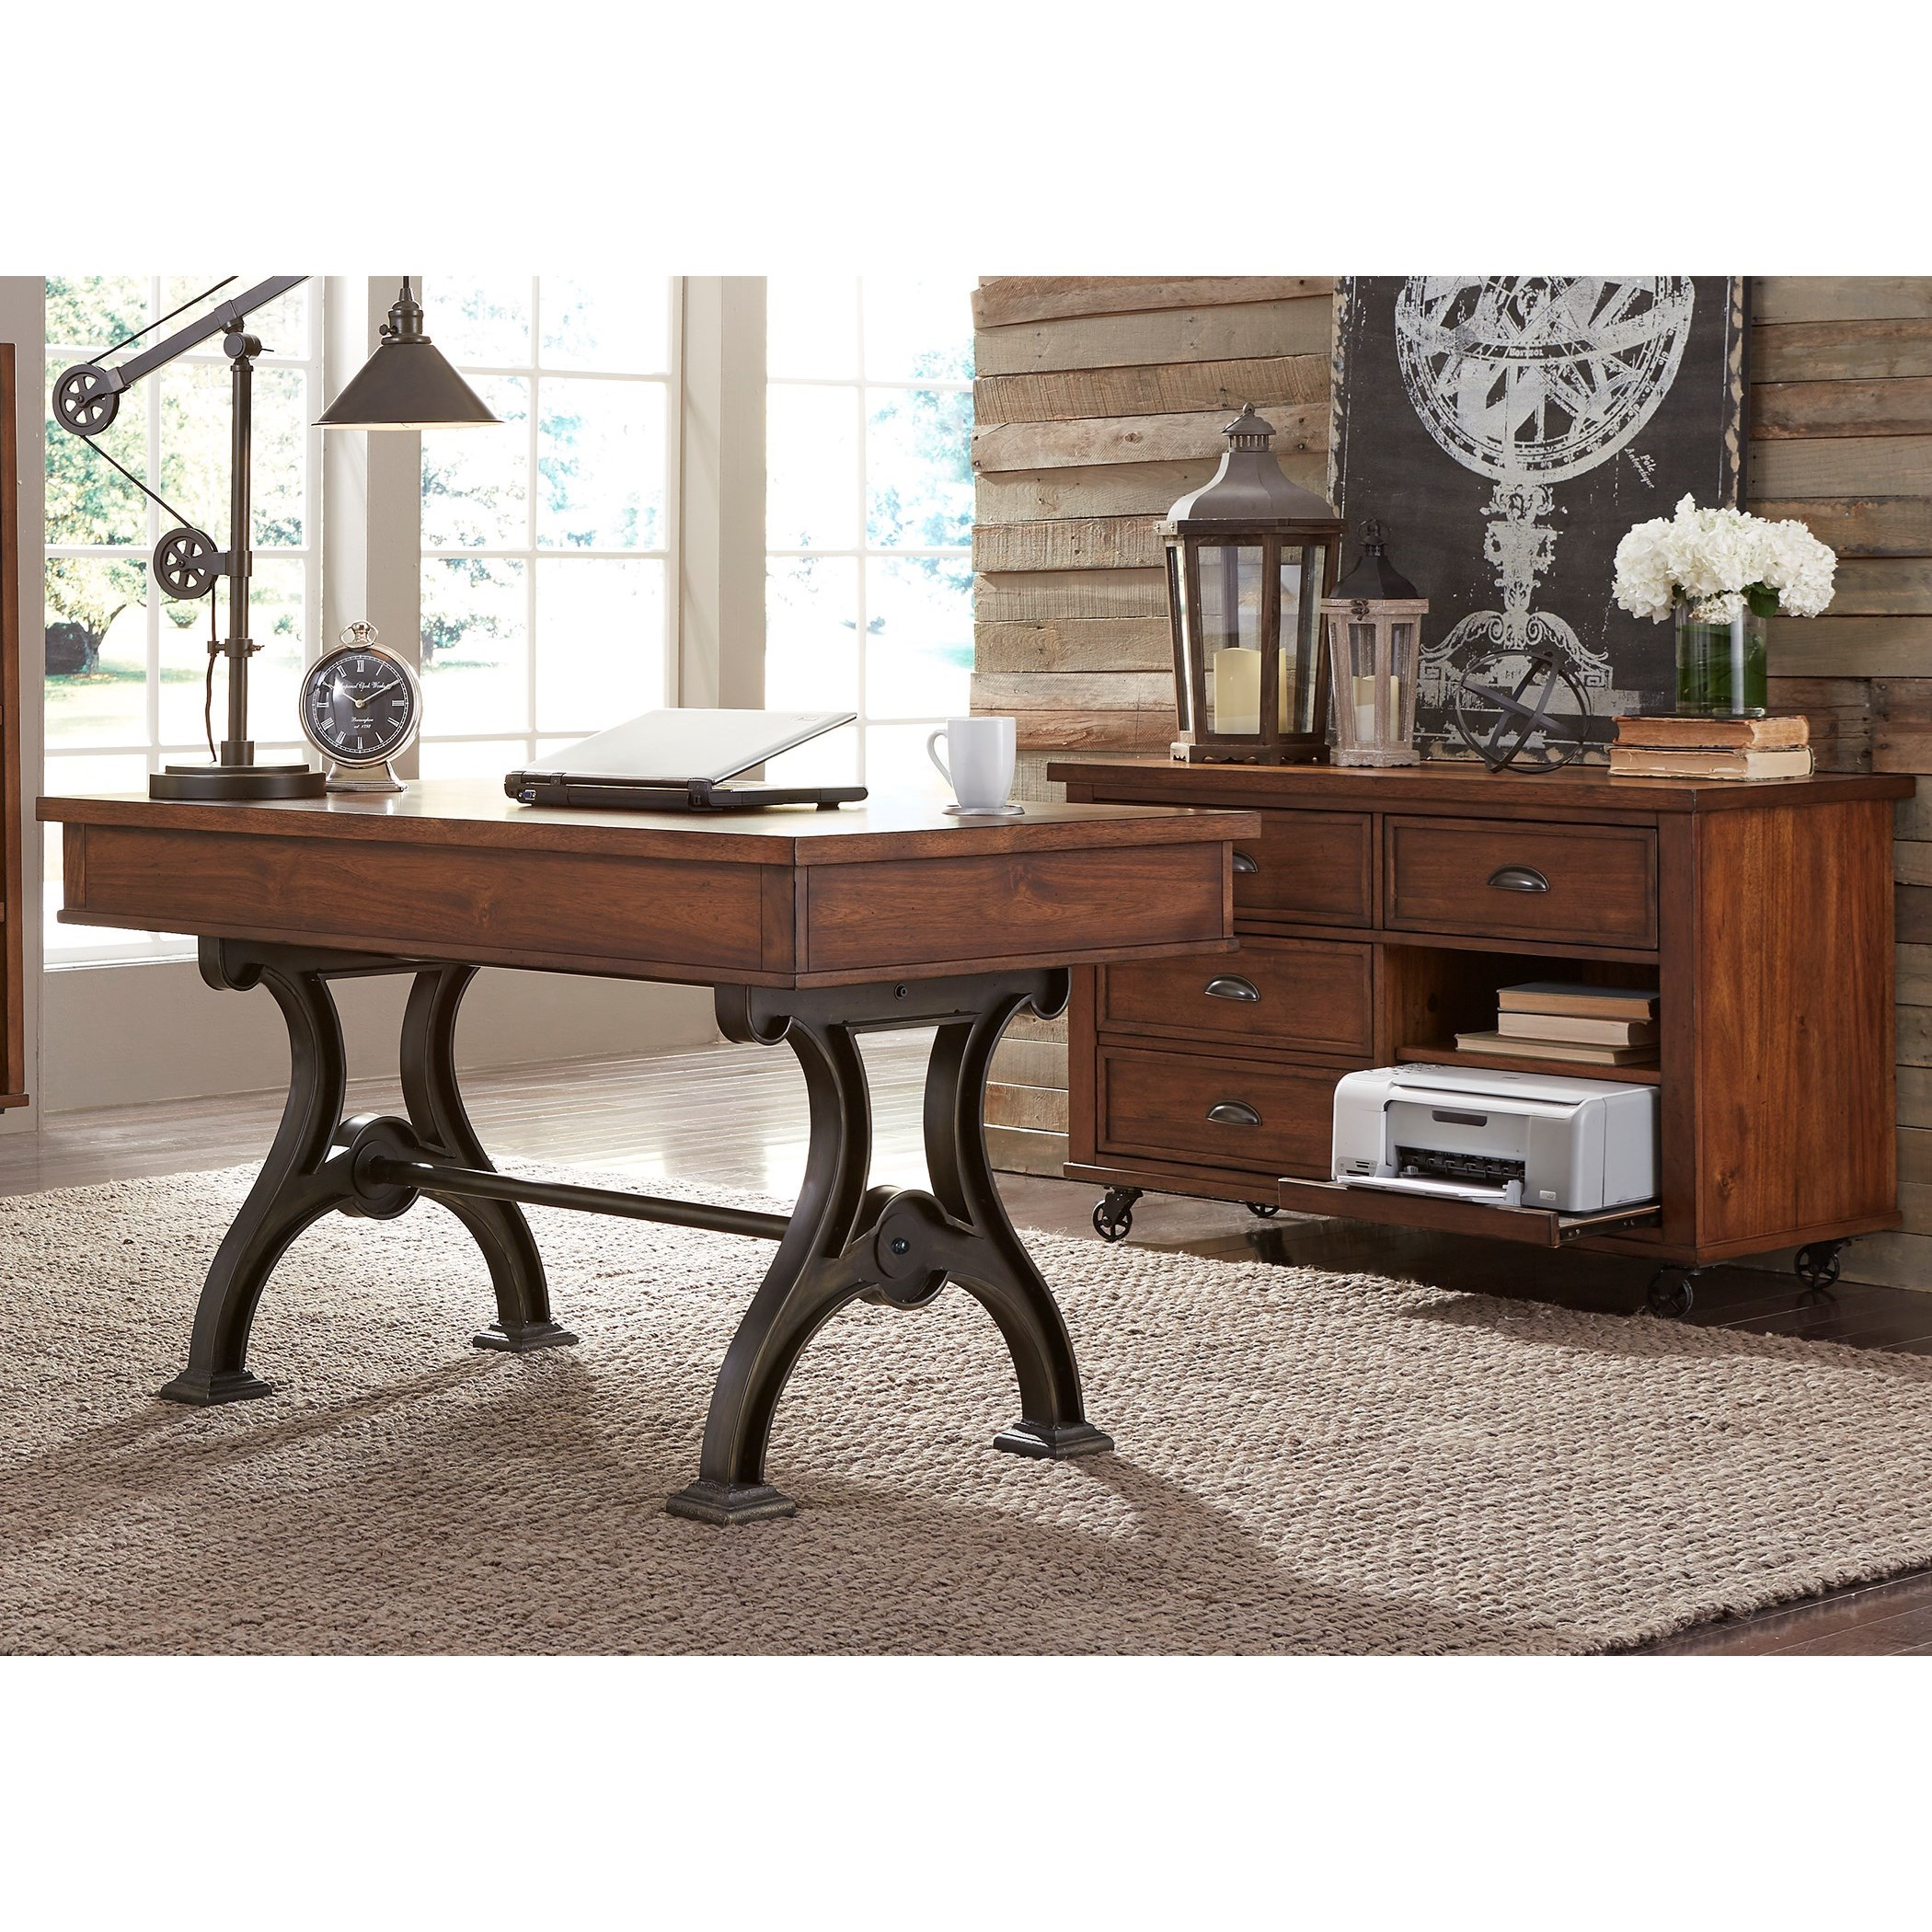 Arlington Desk and Credenza by Liberty Furniture at Catalog Outlet